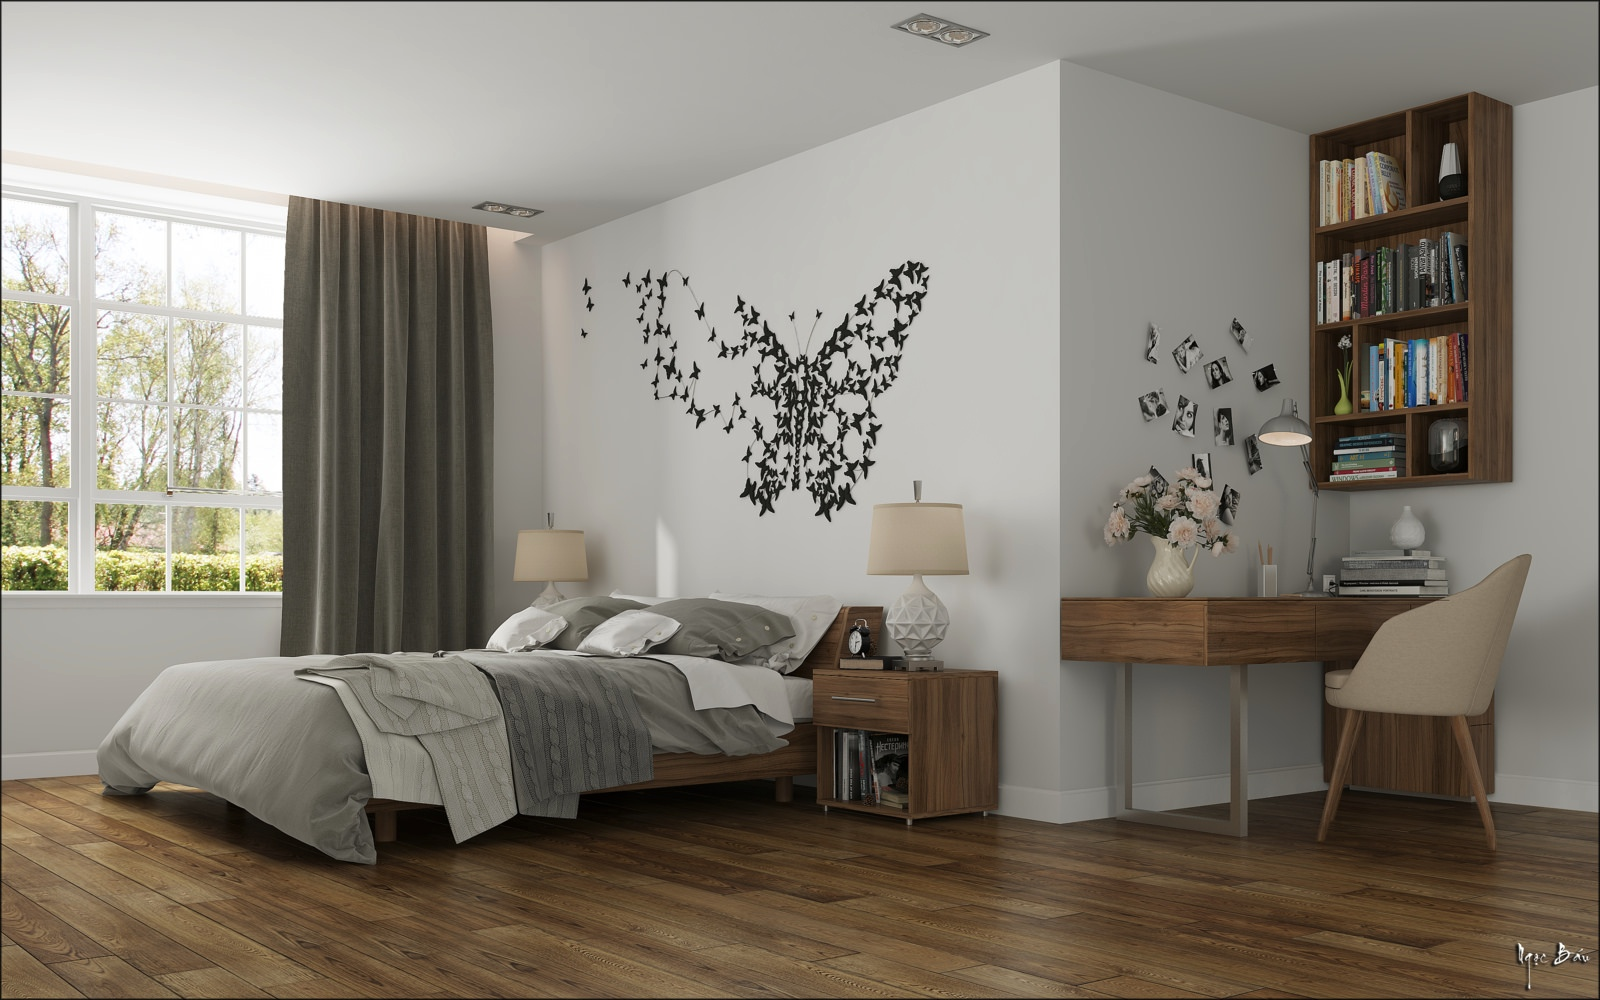 Bedroom butterfly wall art interior design ideas - Bedroom wall decor ideas ...